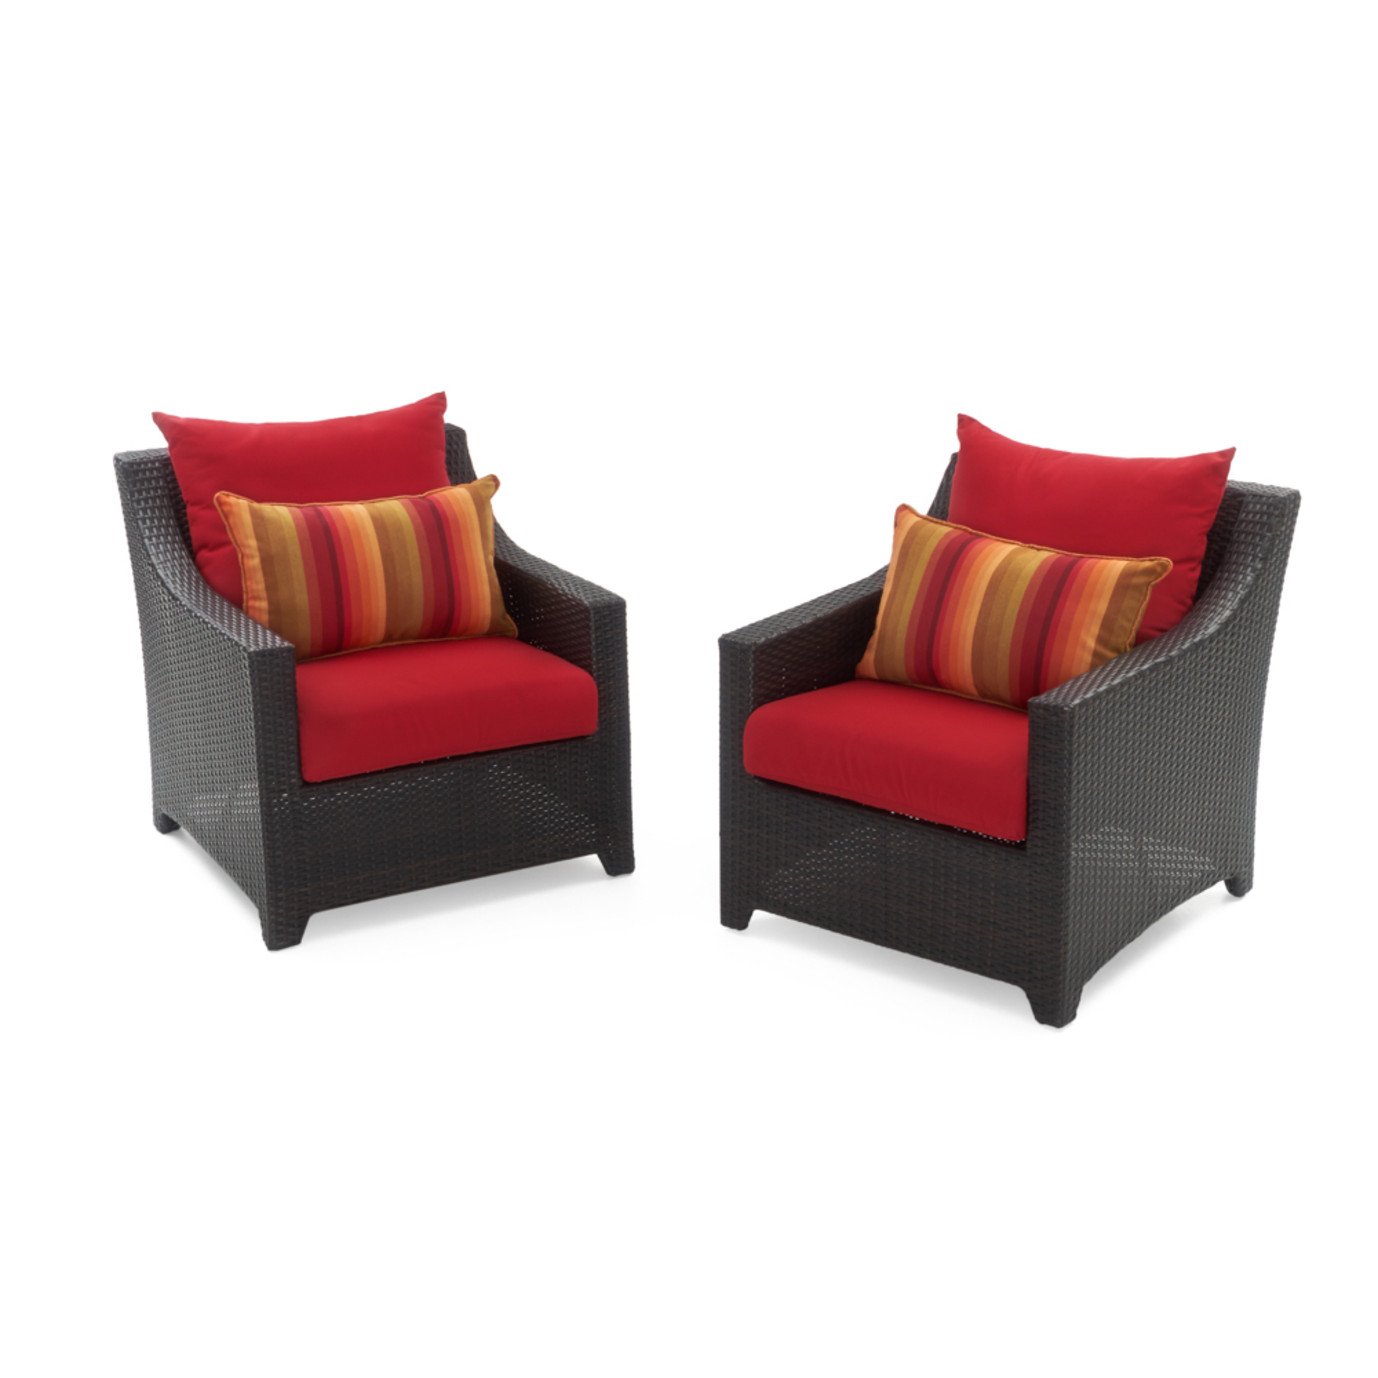 Deco™ Club Chairs - Sunset Red